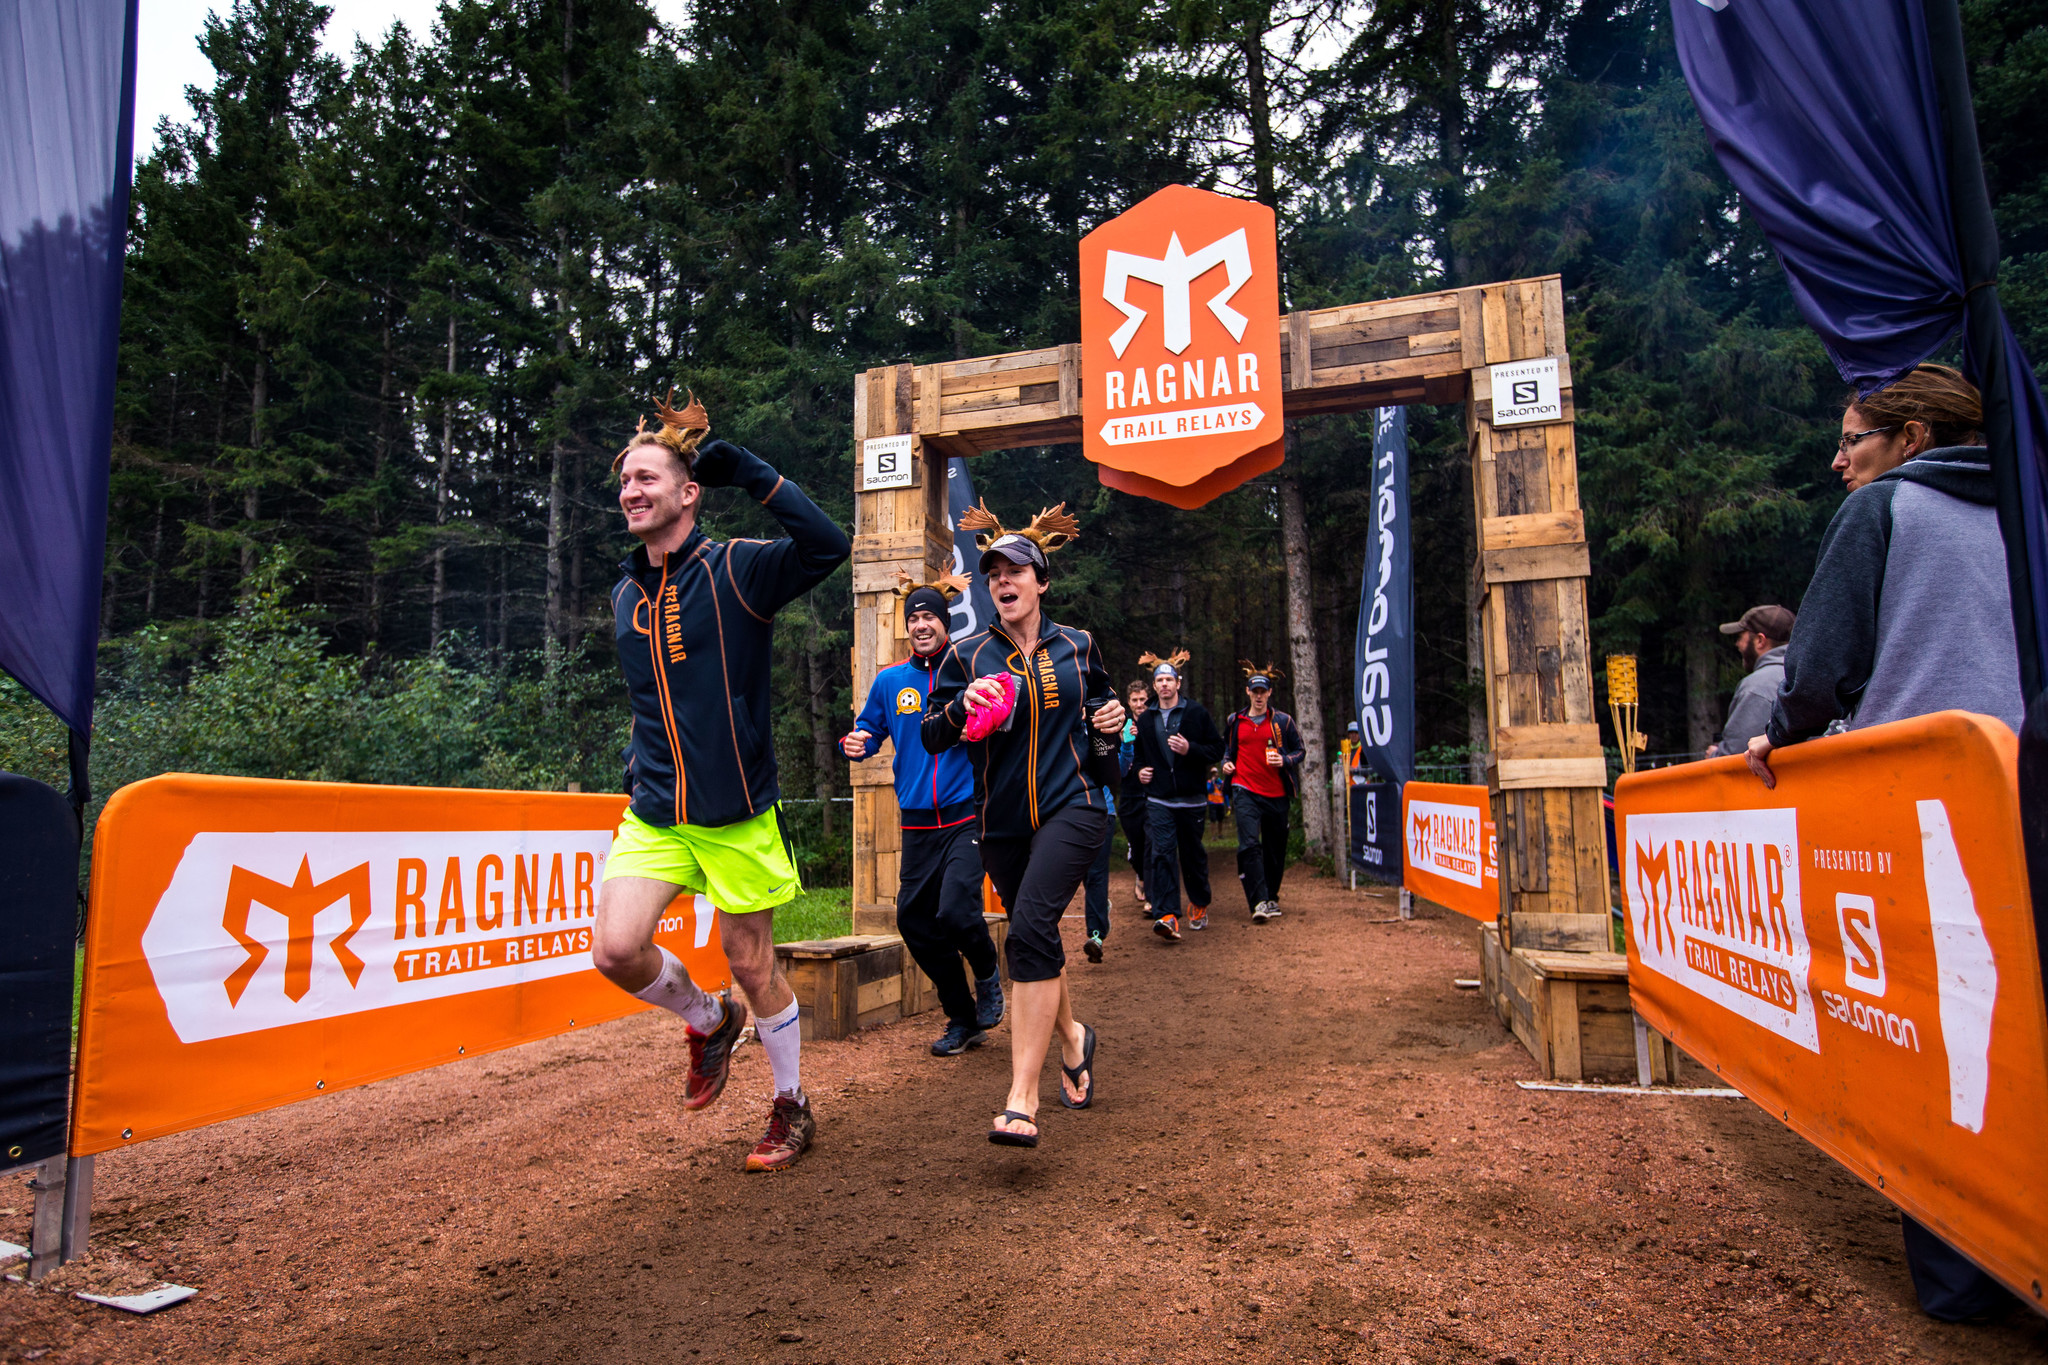 Ragnar Trail Atlanta on April 17-18, 2020